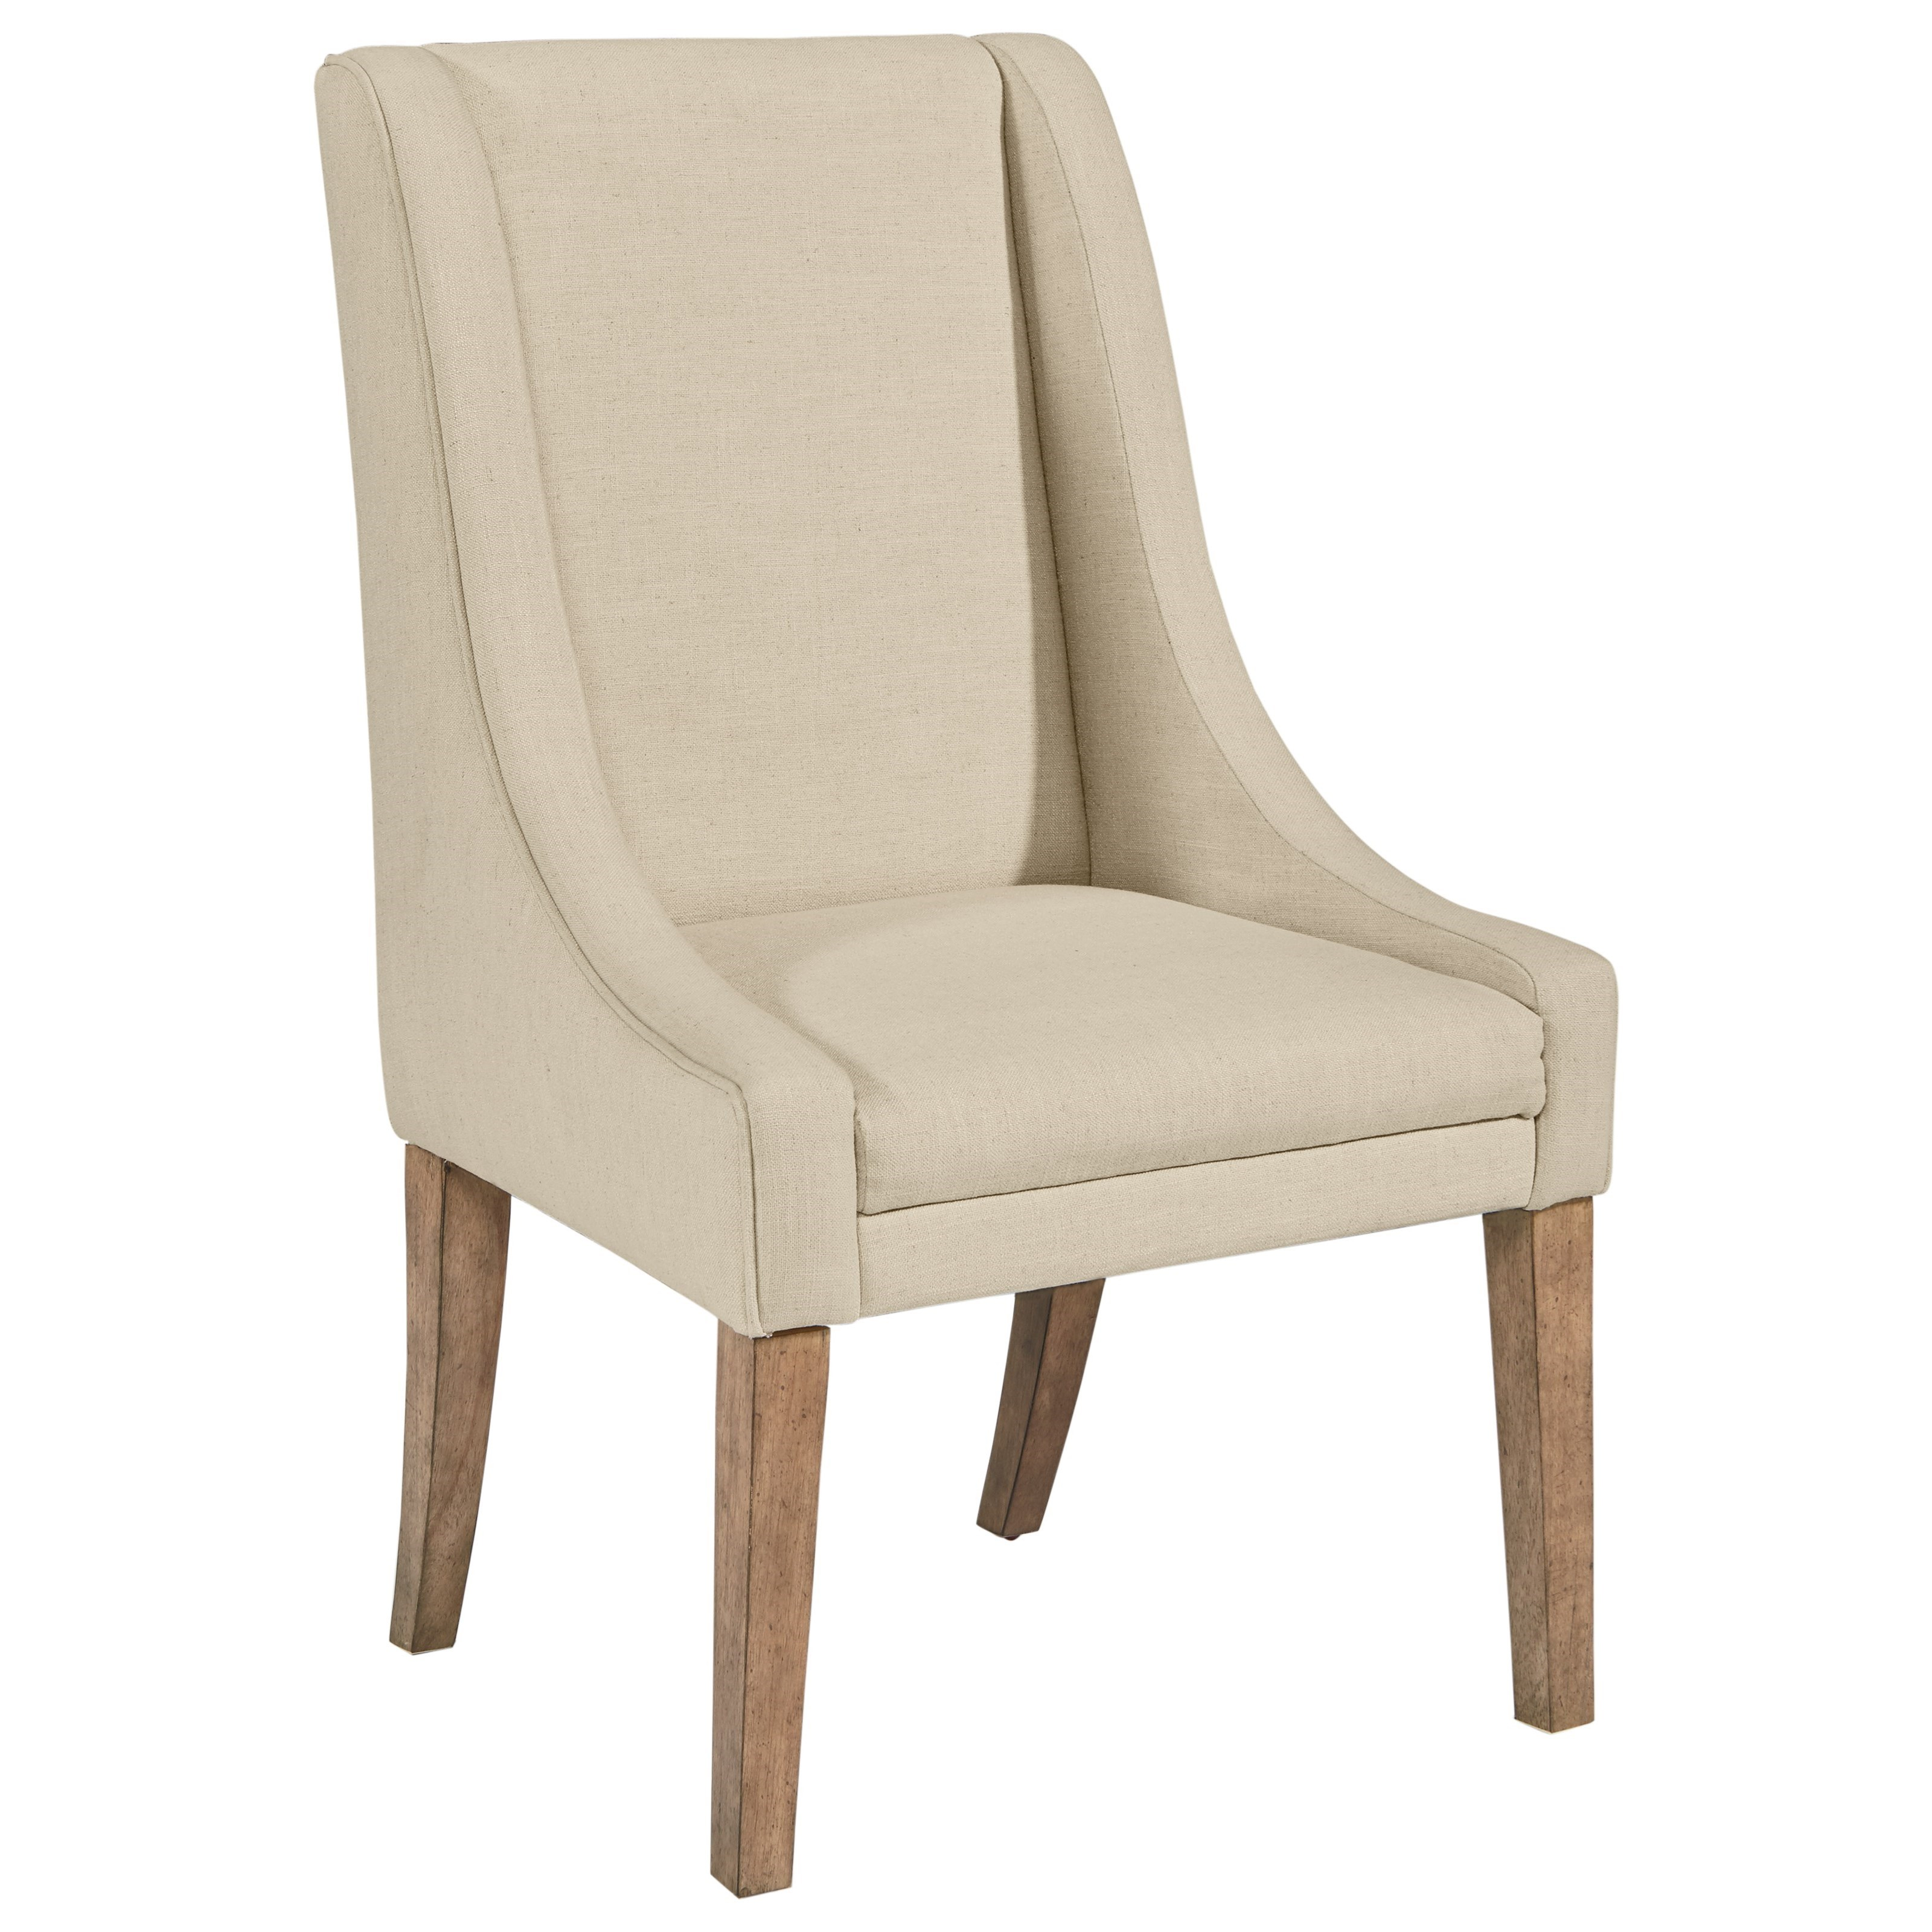 Magnolia Home by Joanna Gaines French Inspired Demi Wing  : products2Fmagnoliahome2Fcolor2Ffrench 3974907693010207h b1 from www.olindes.com size 3200 x 3200 jpeg 977kB